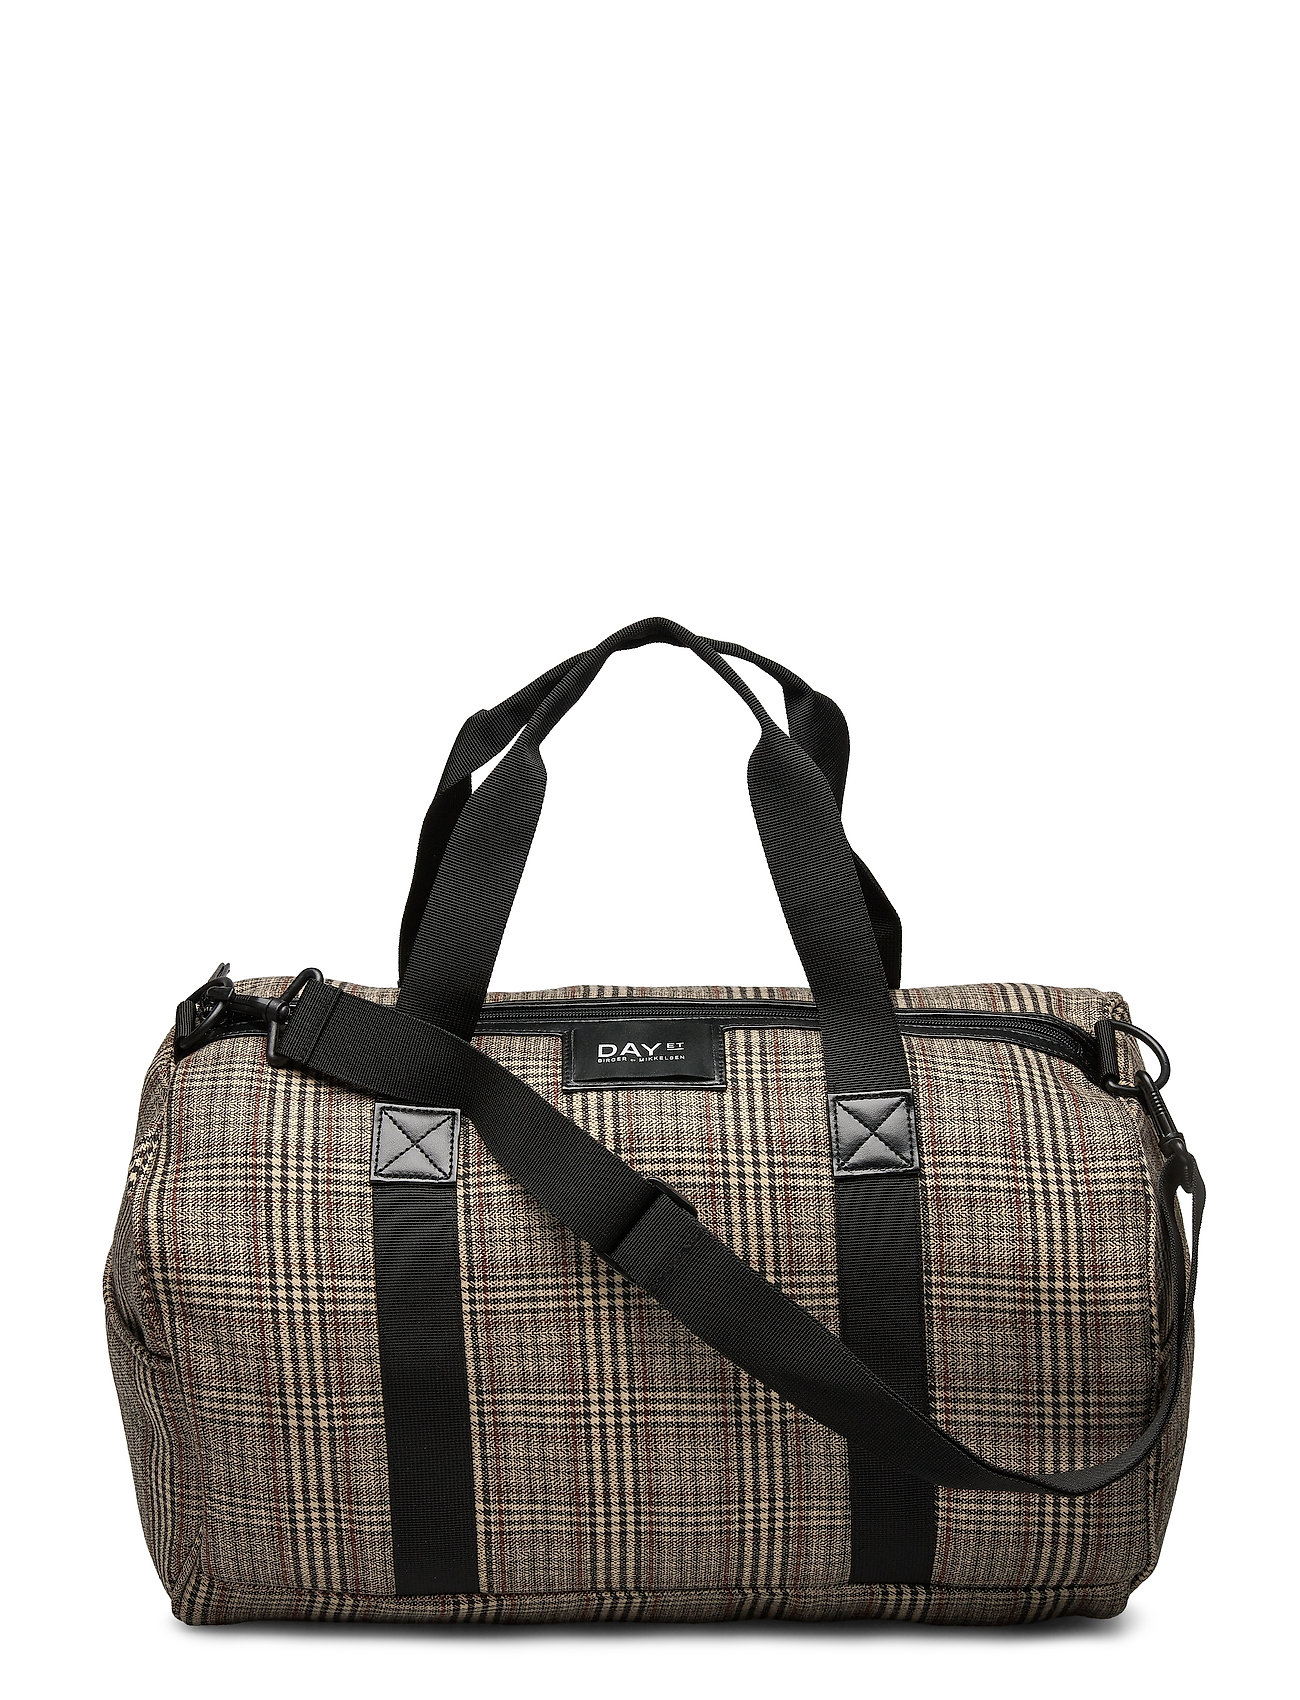 Image of Day Gweneth Teddy Sport Bags Weekend & Gym Bags Brun DAY Et (3445584347)